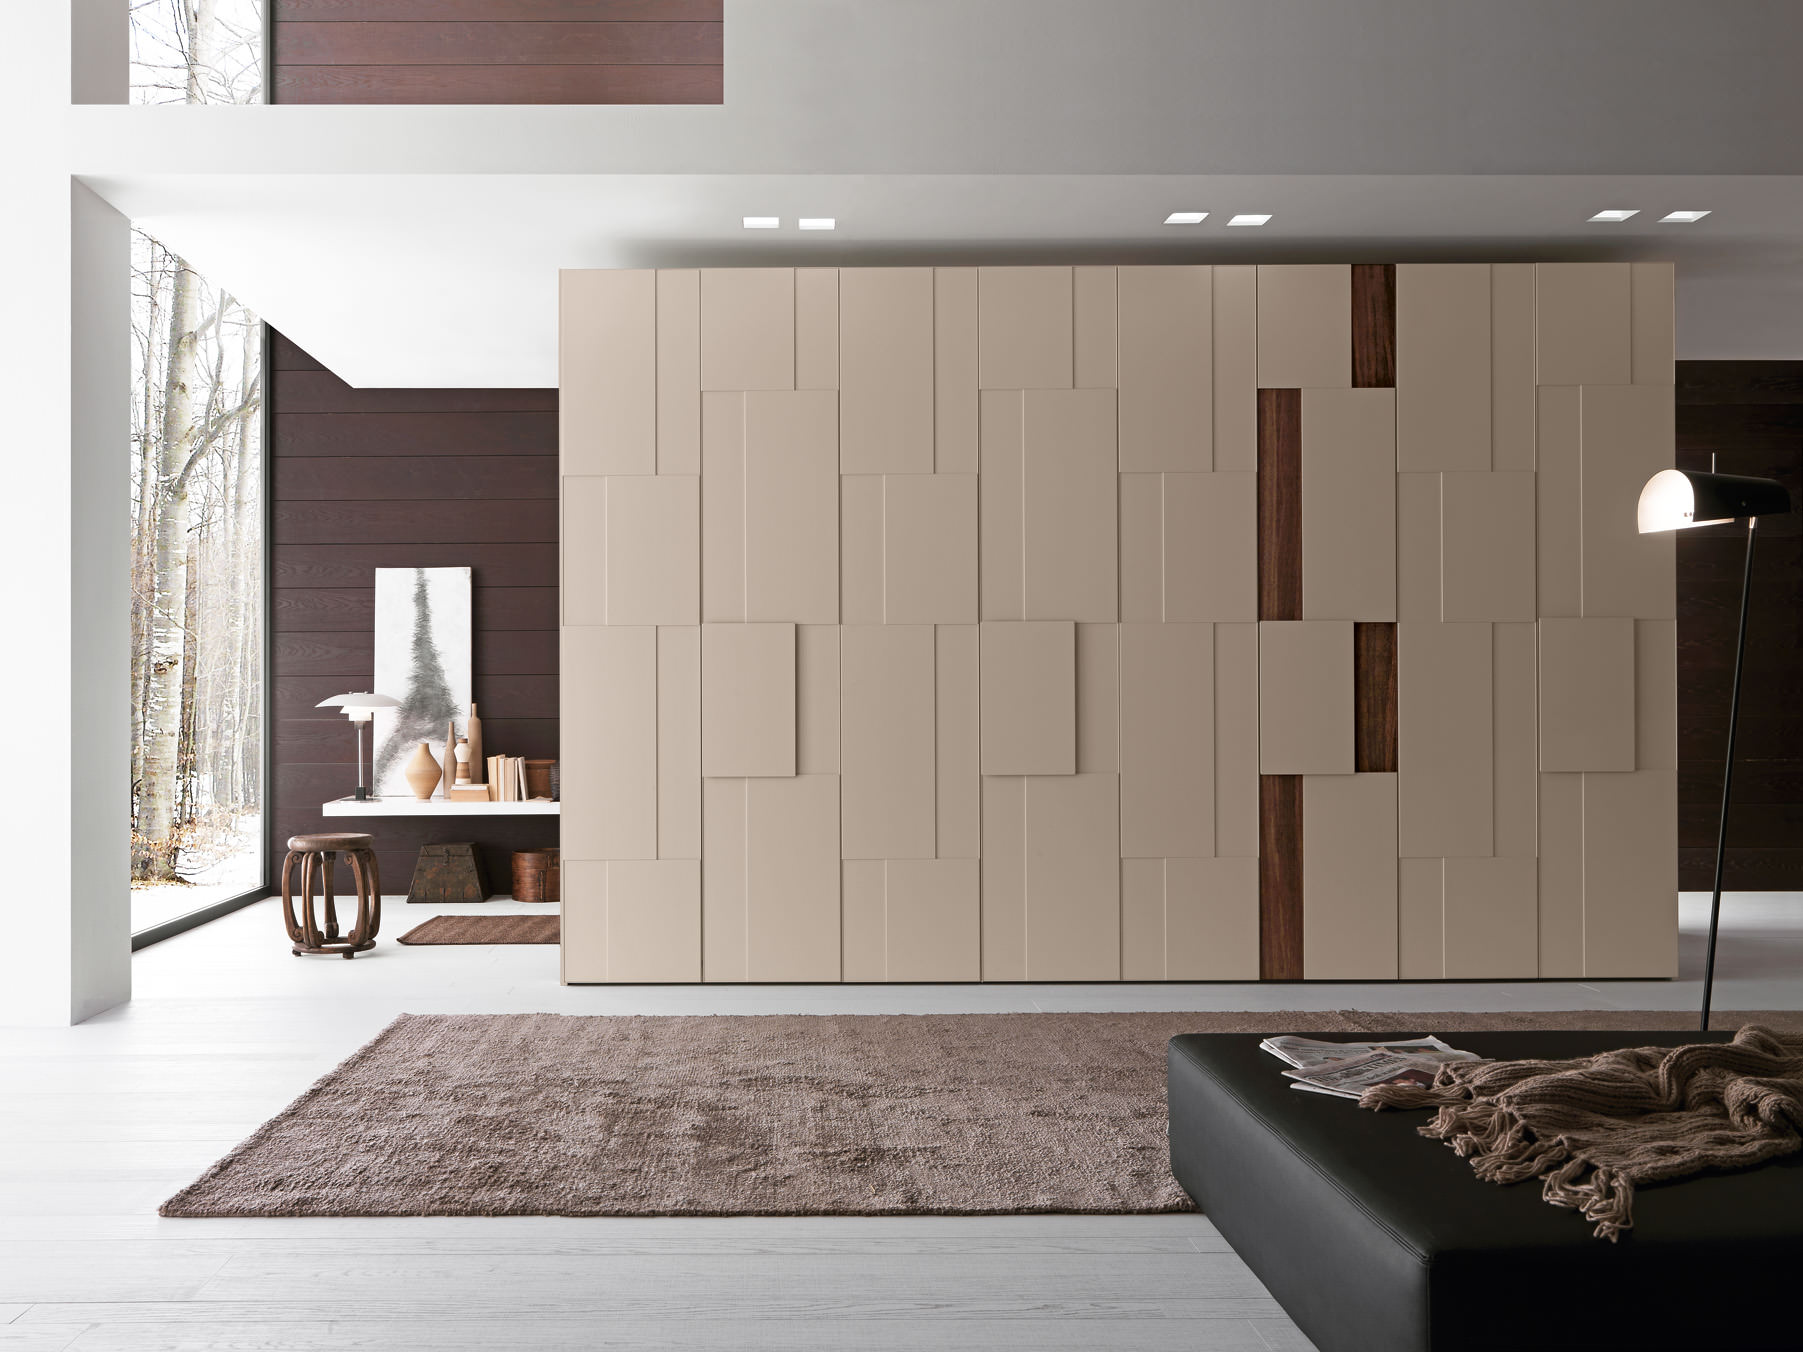 Modern Wardrobes Trend Home Designs Design Trends  : e2 from www.designtrends.com size 1803 x 1352 jpeg 295kB